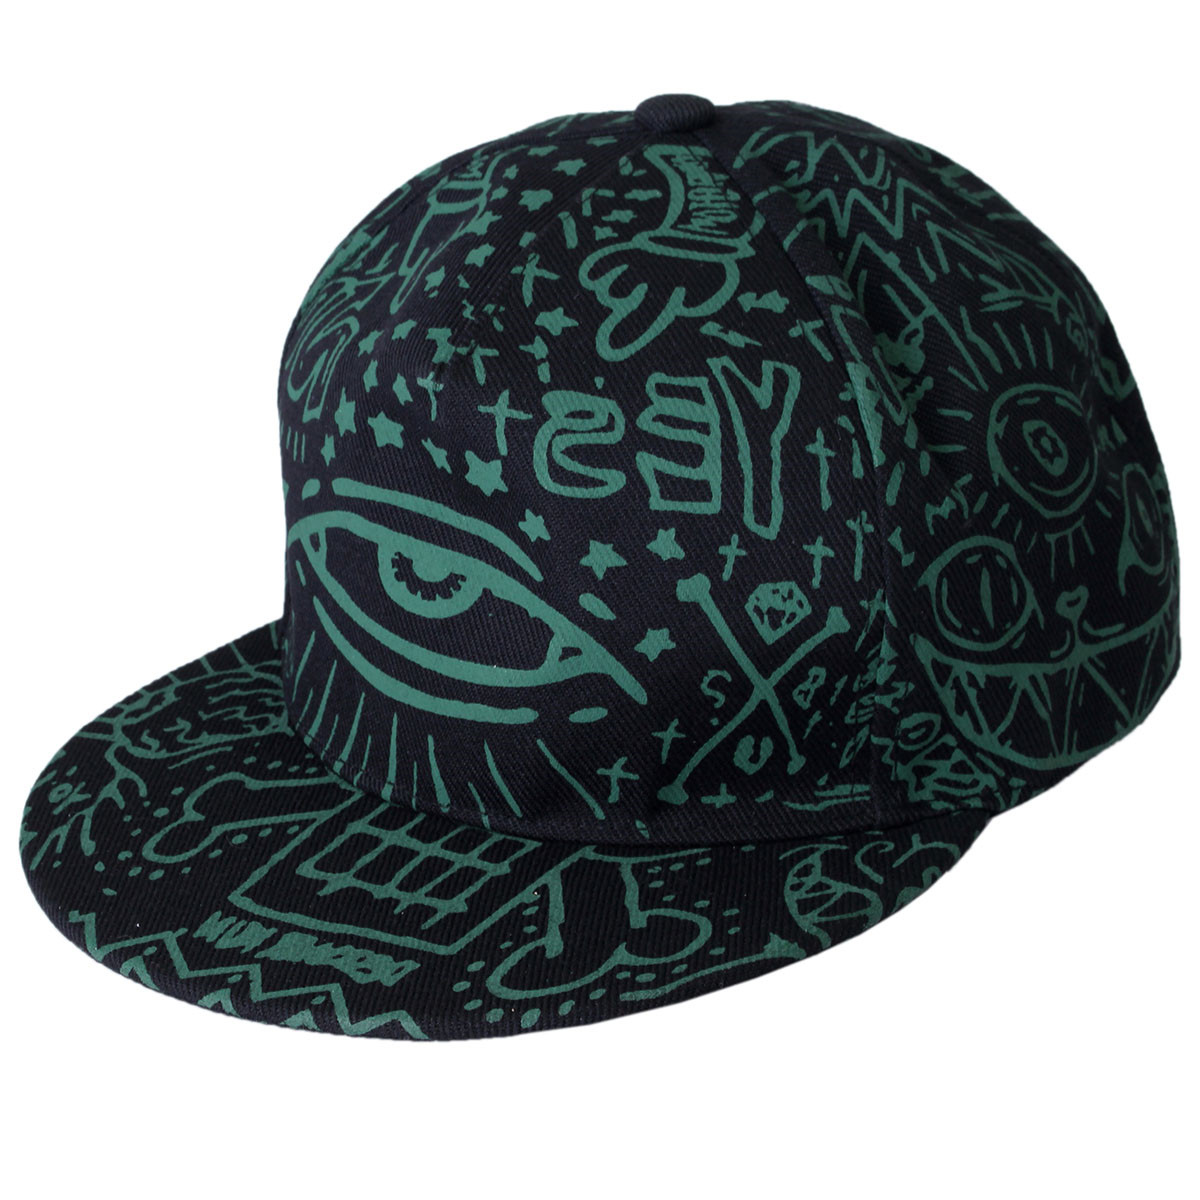 Mens Women Hip-Hop Baseball Flat Bill Hat Graffiti Hippie Snapback Adjustable Cap